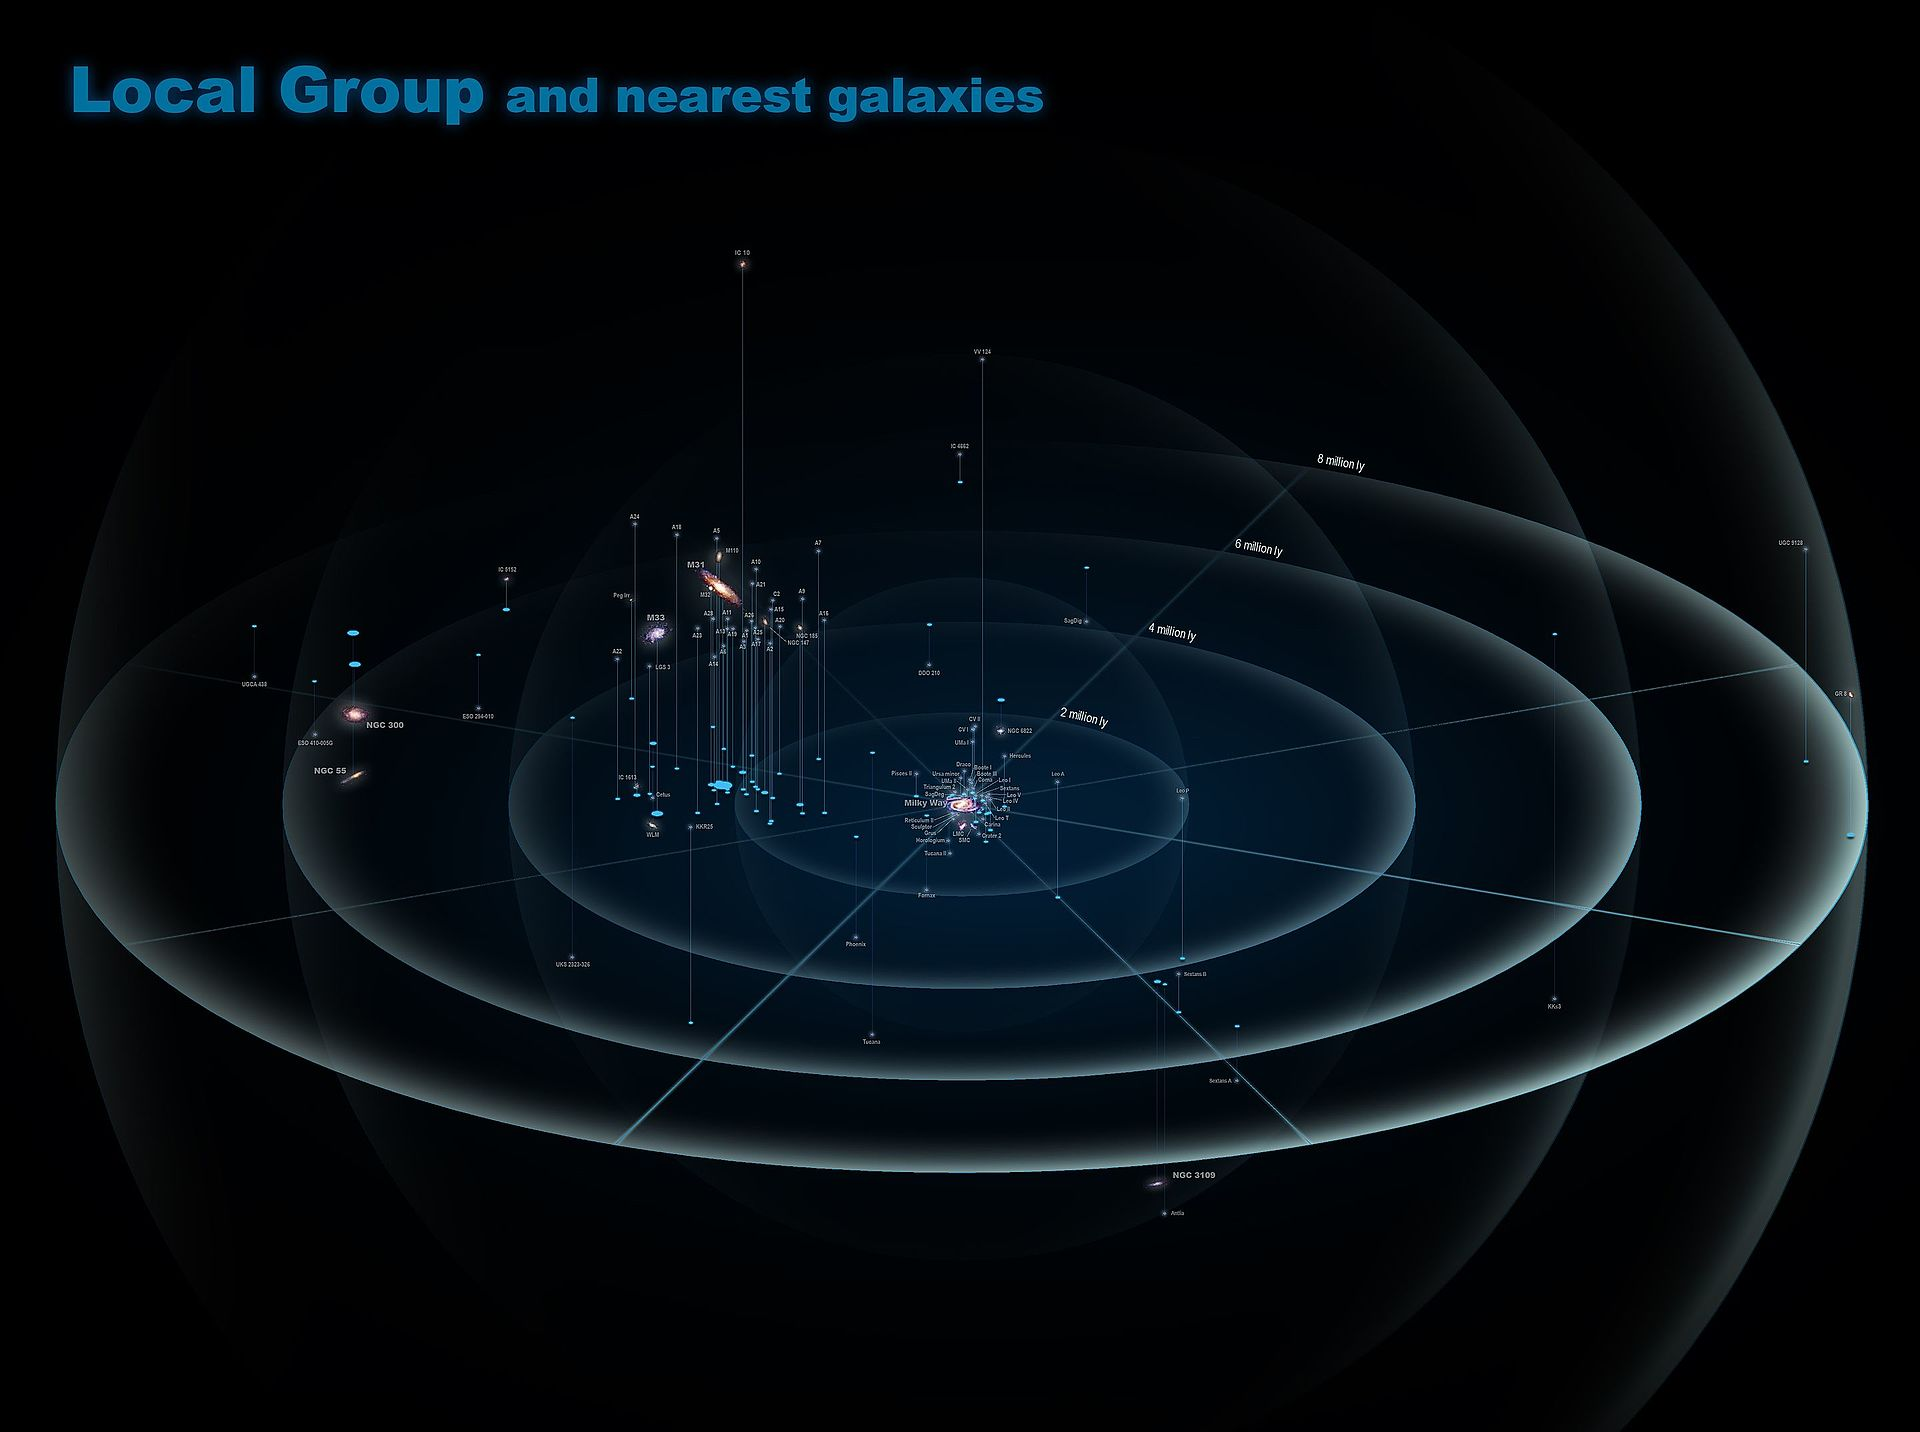 Local Group and nearest galaxies. (Wikipedia Commons/Antonio Ciccolella)